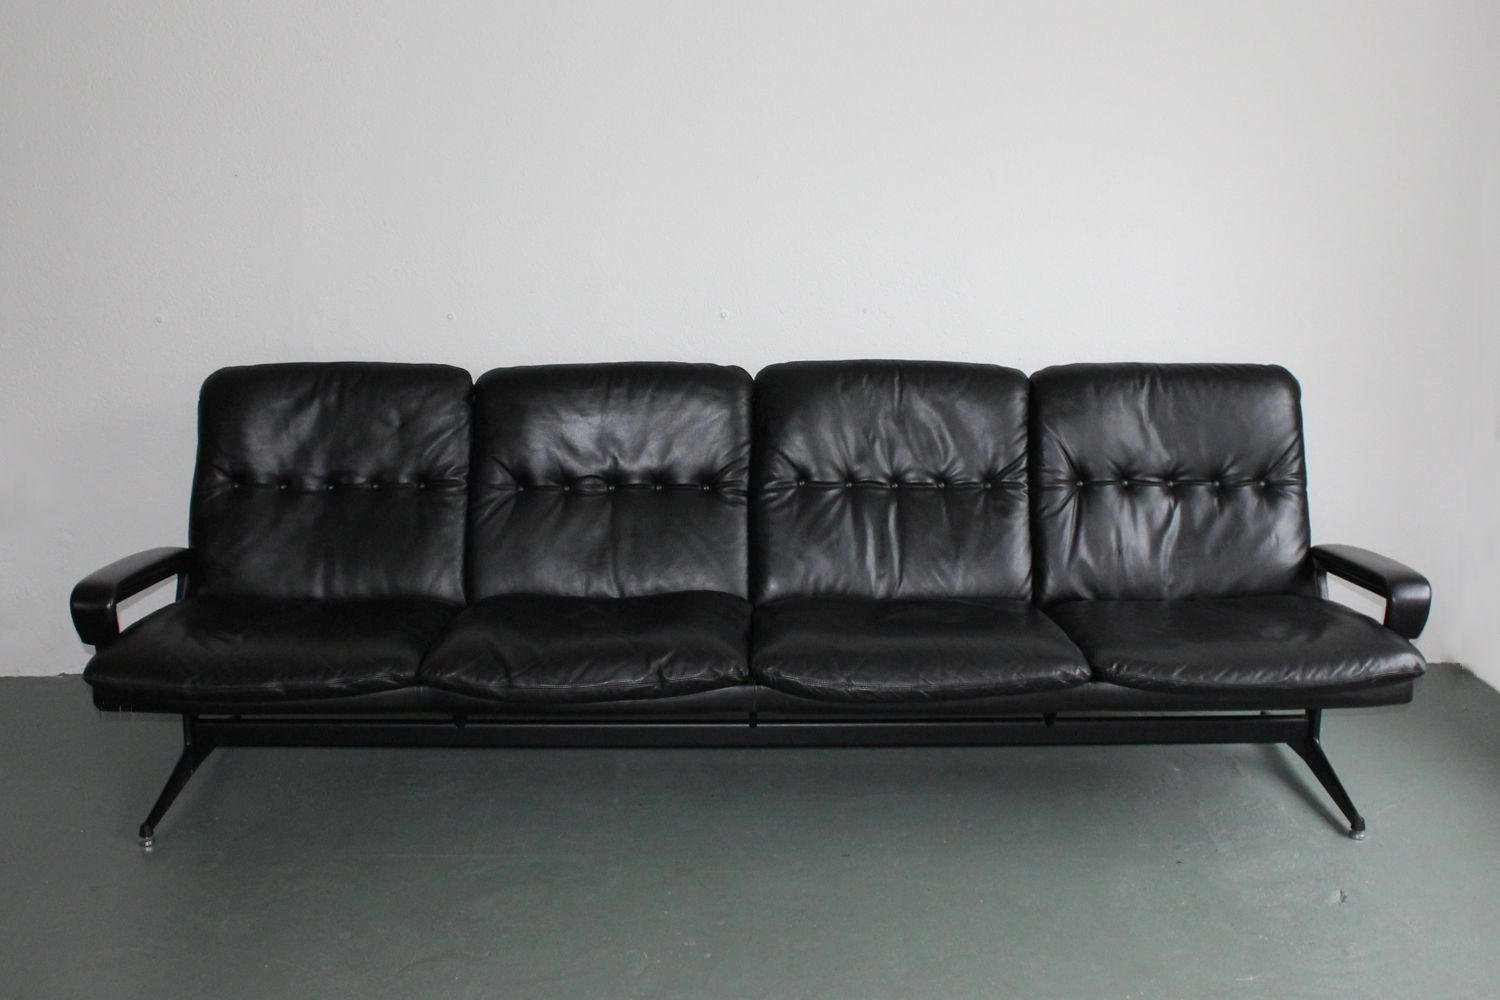 King Sofa By Andr Vandenbeuck For Str Ssle For Sale At Pamono